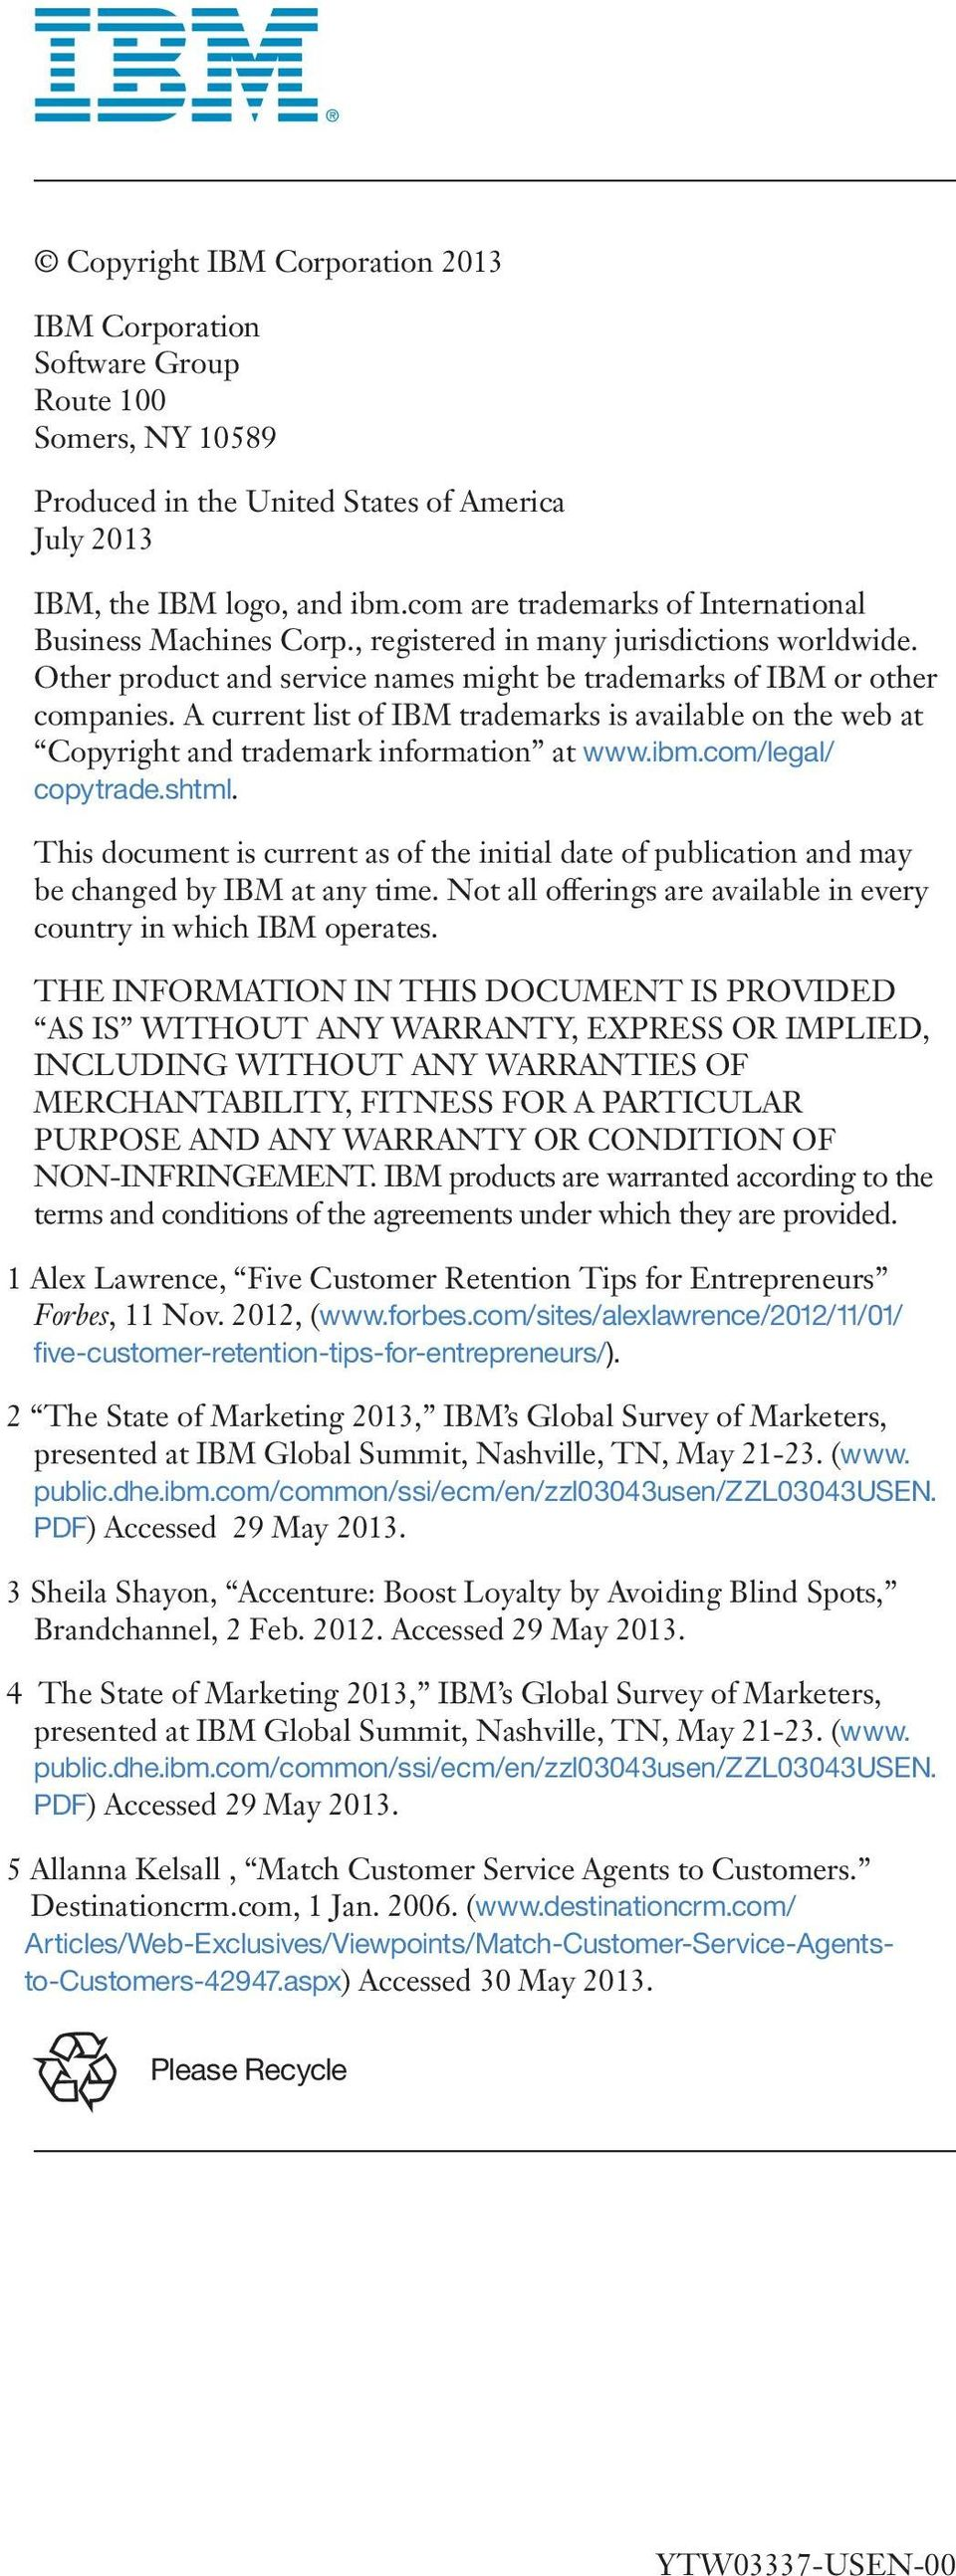 A current list of IBM trademarks is available on the web at Copyright and trademark information at www.ibm.com/legal/ copytrade.shtml.